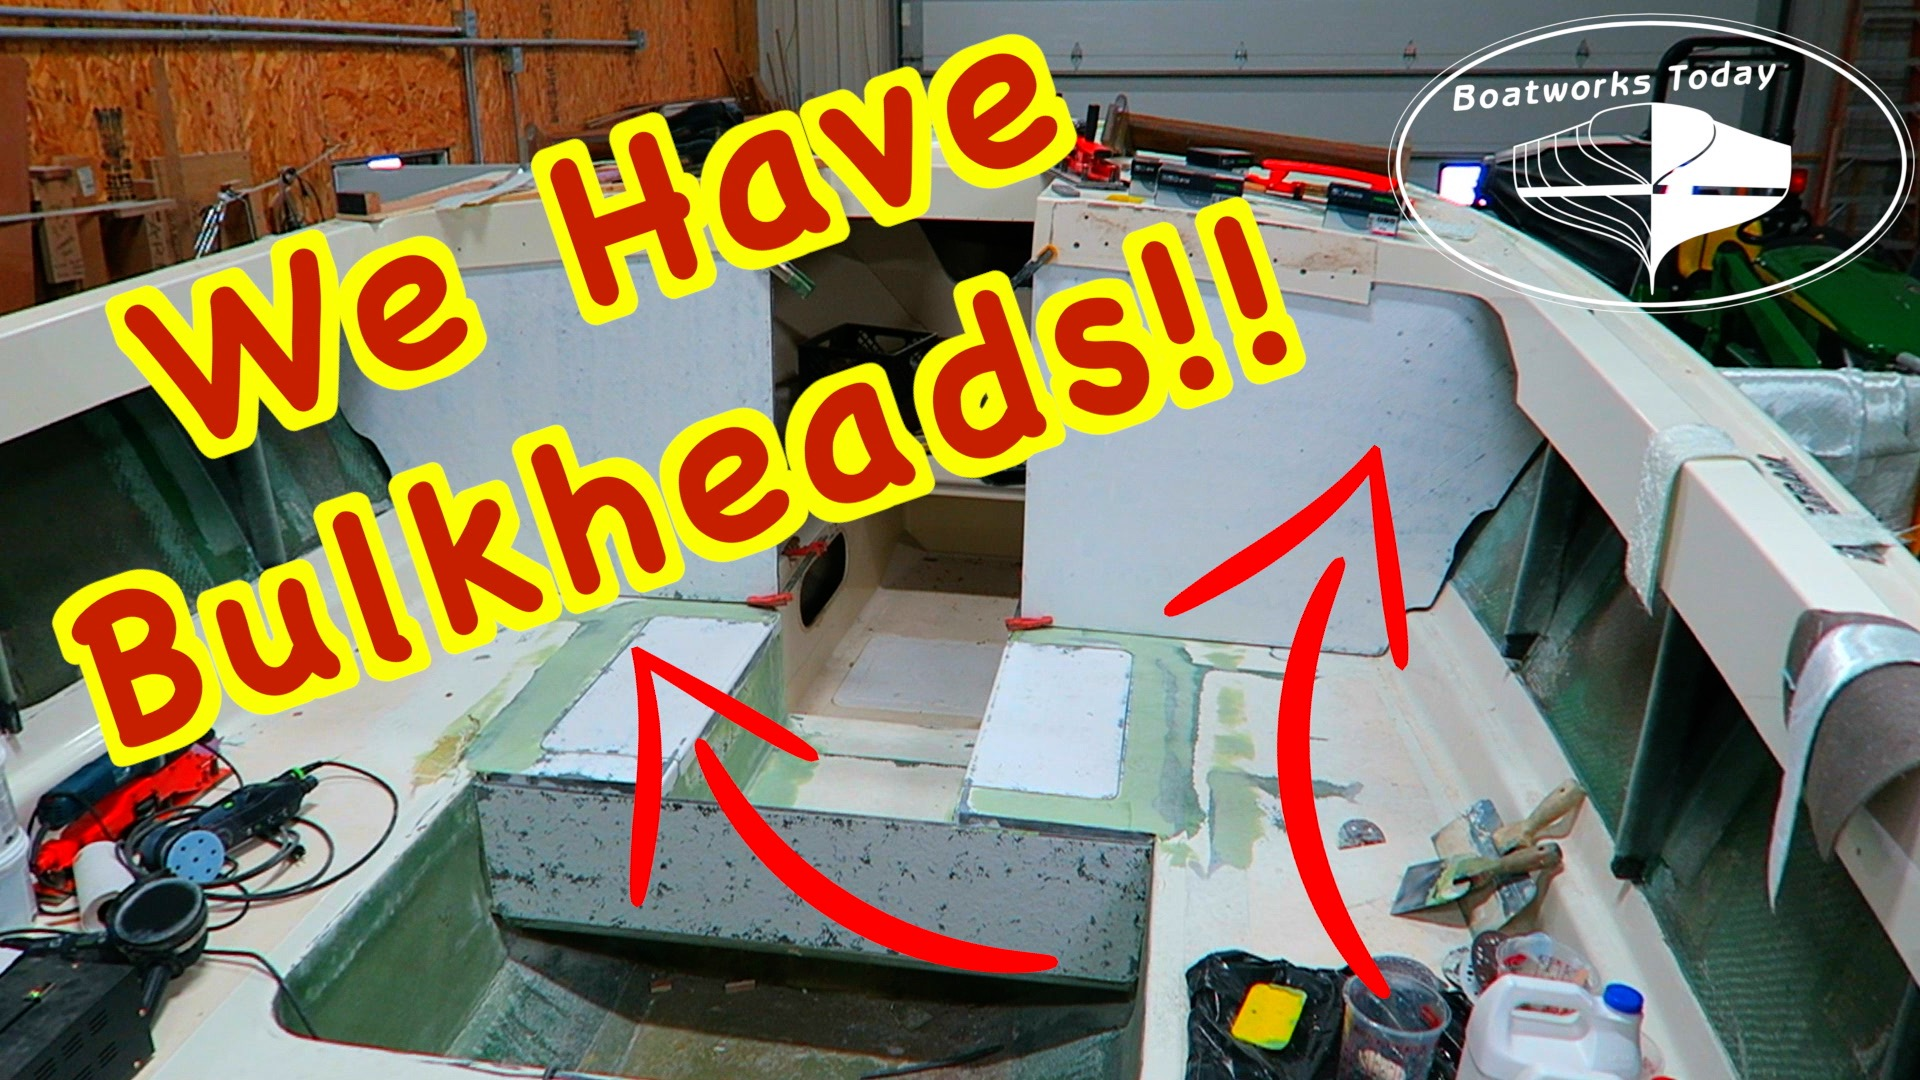 Cutting Fiberglassing And Fitting The New Bulkheads!